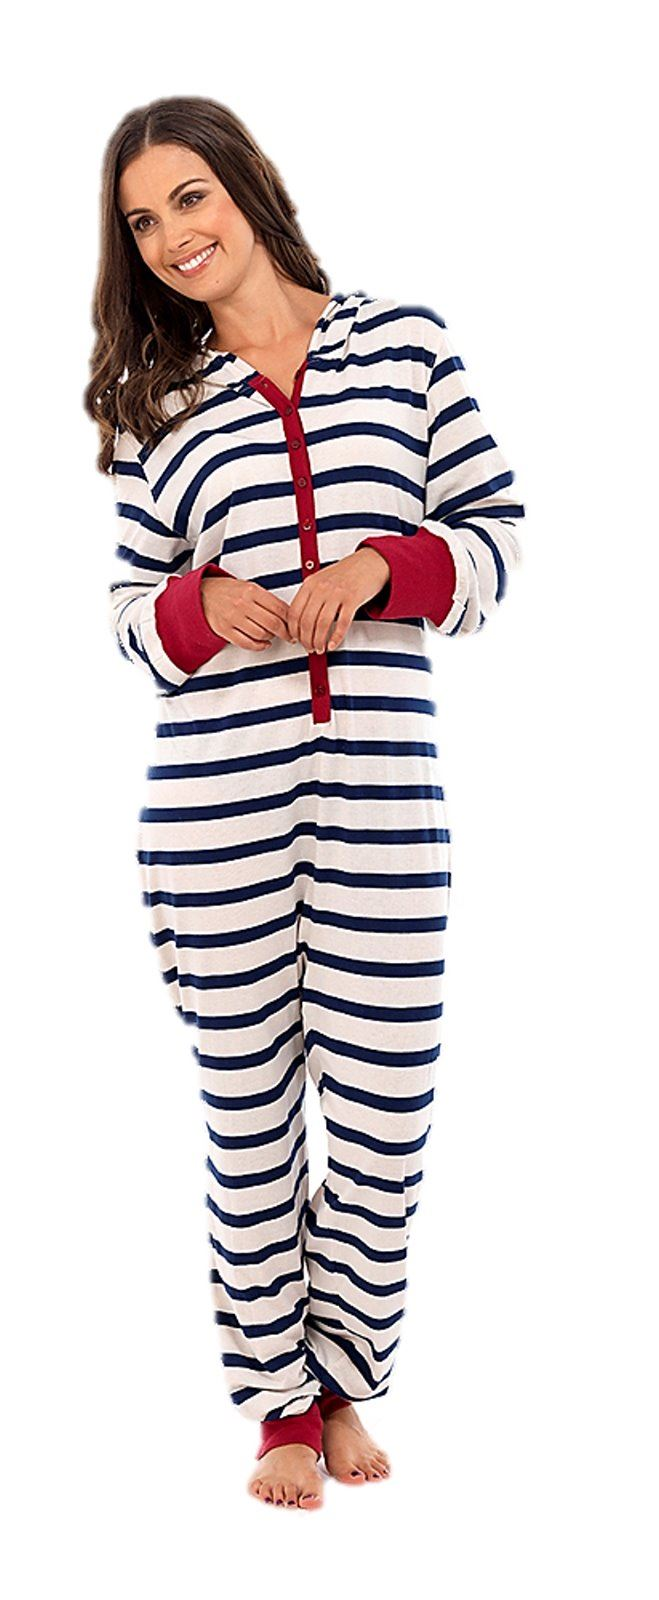 damen overall einteiler schlafanzug mit kapuze pyjama jumpsuit hausanzug ebay. Black Bedroom Furniture Sets. Home Design Ideas